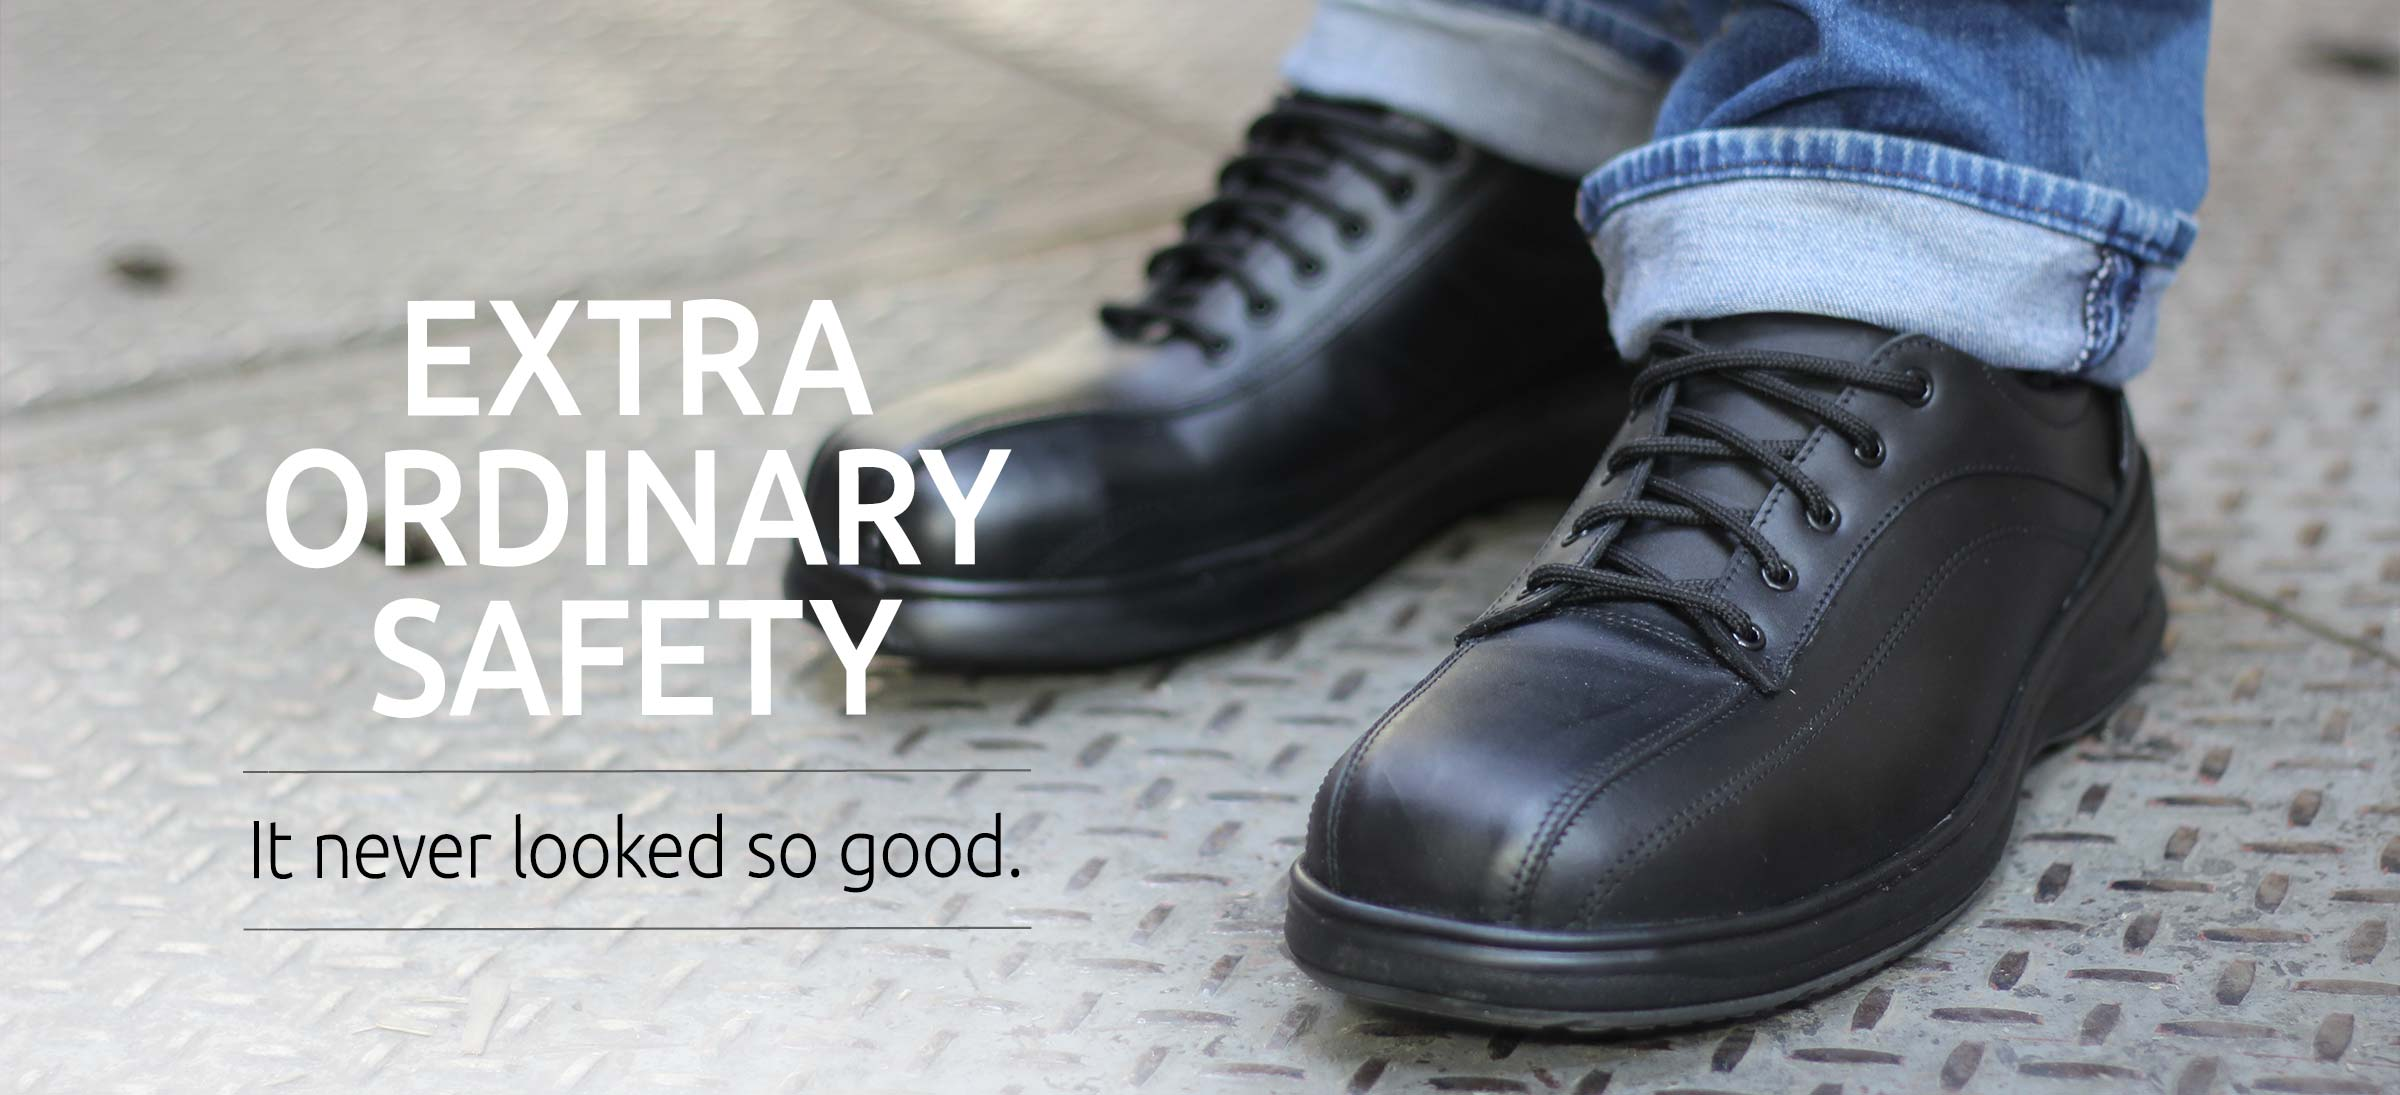 Extra ordinary safety shoe